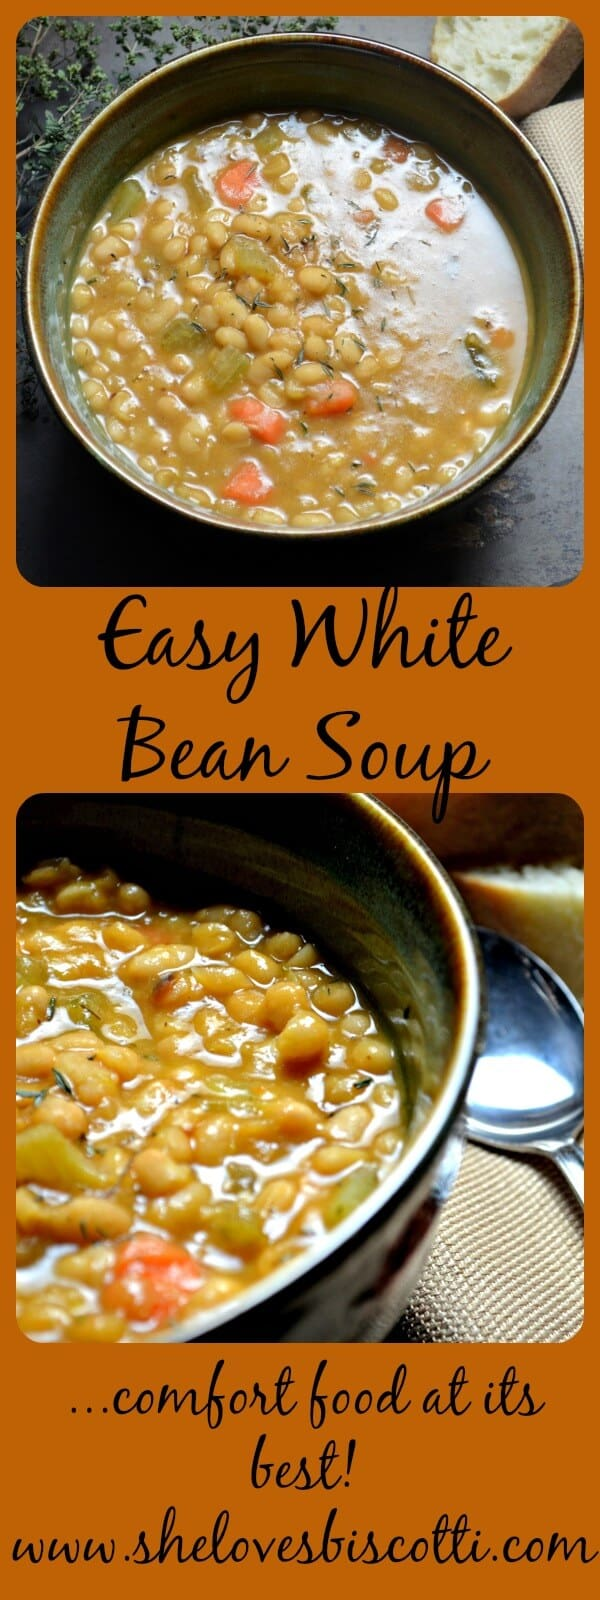 A bowl of white bean soup.